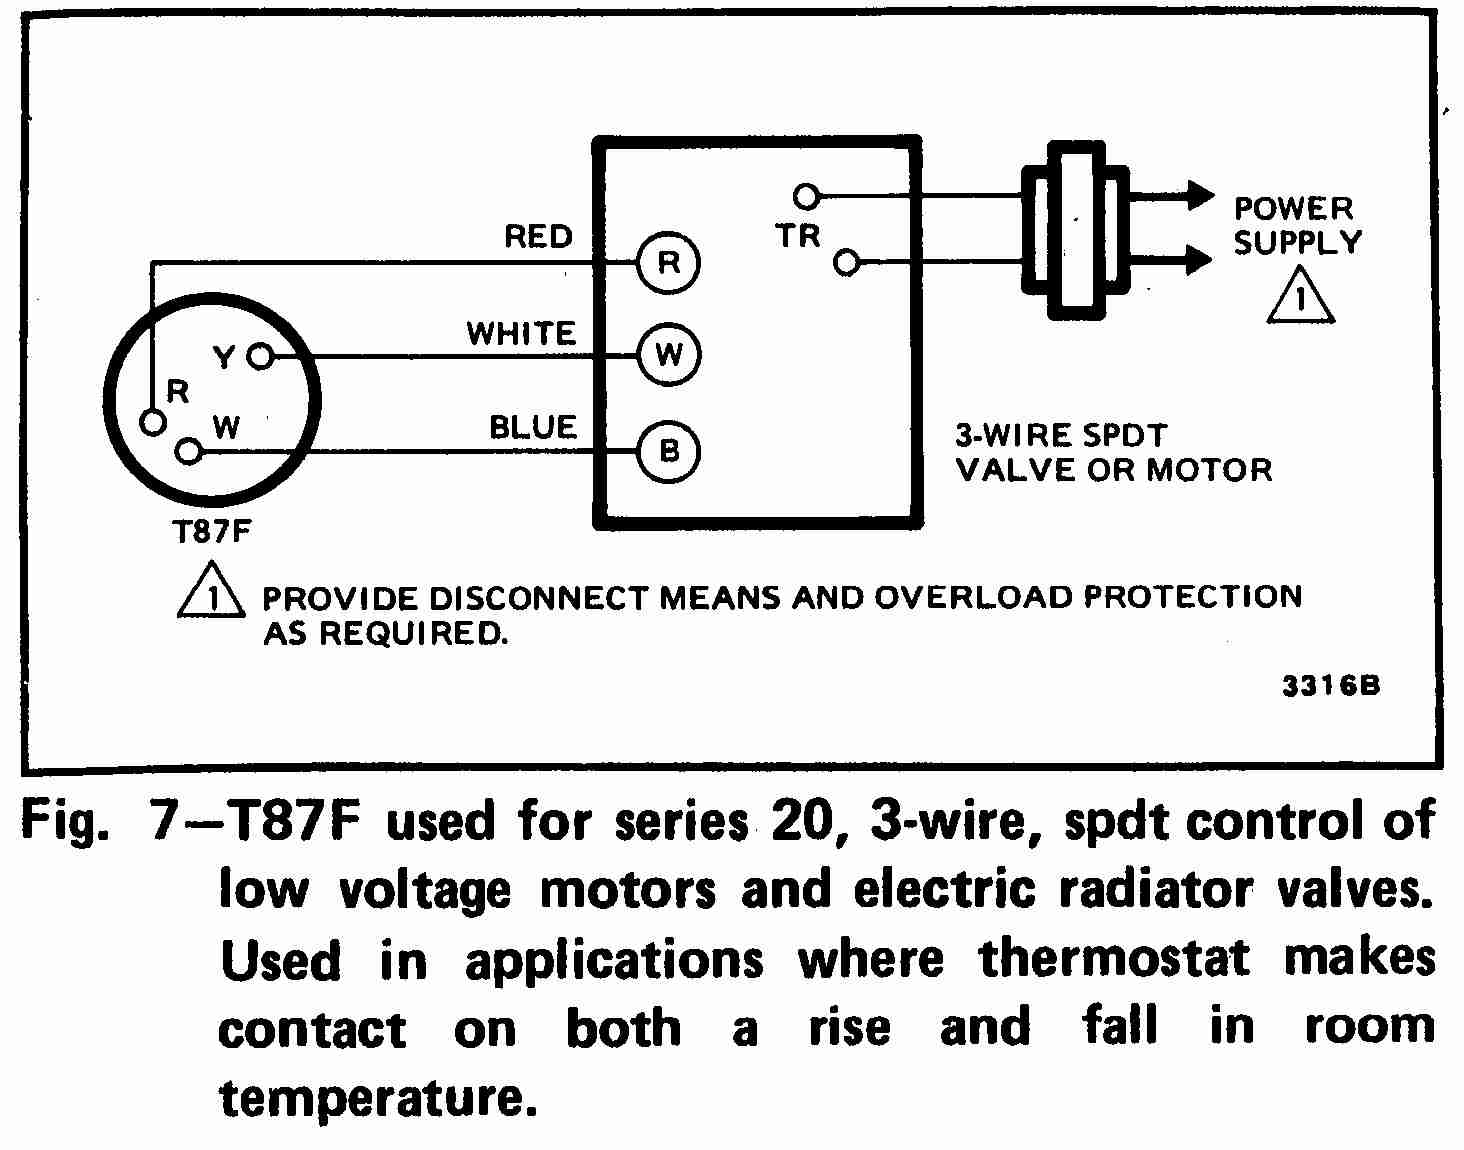 TT_T87F_0002_3W2_DJF room thermostat wiring diagrams for hvac systems thermostat wiring diagram at crackthecode.co